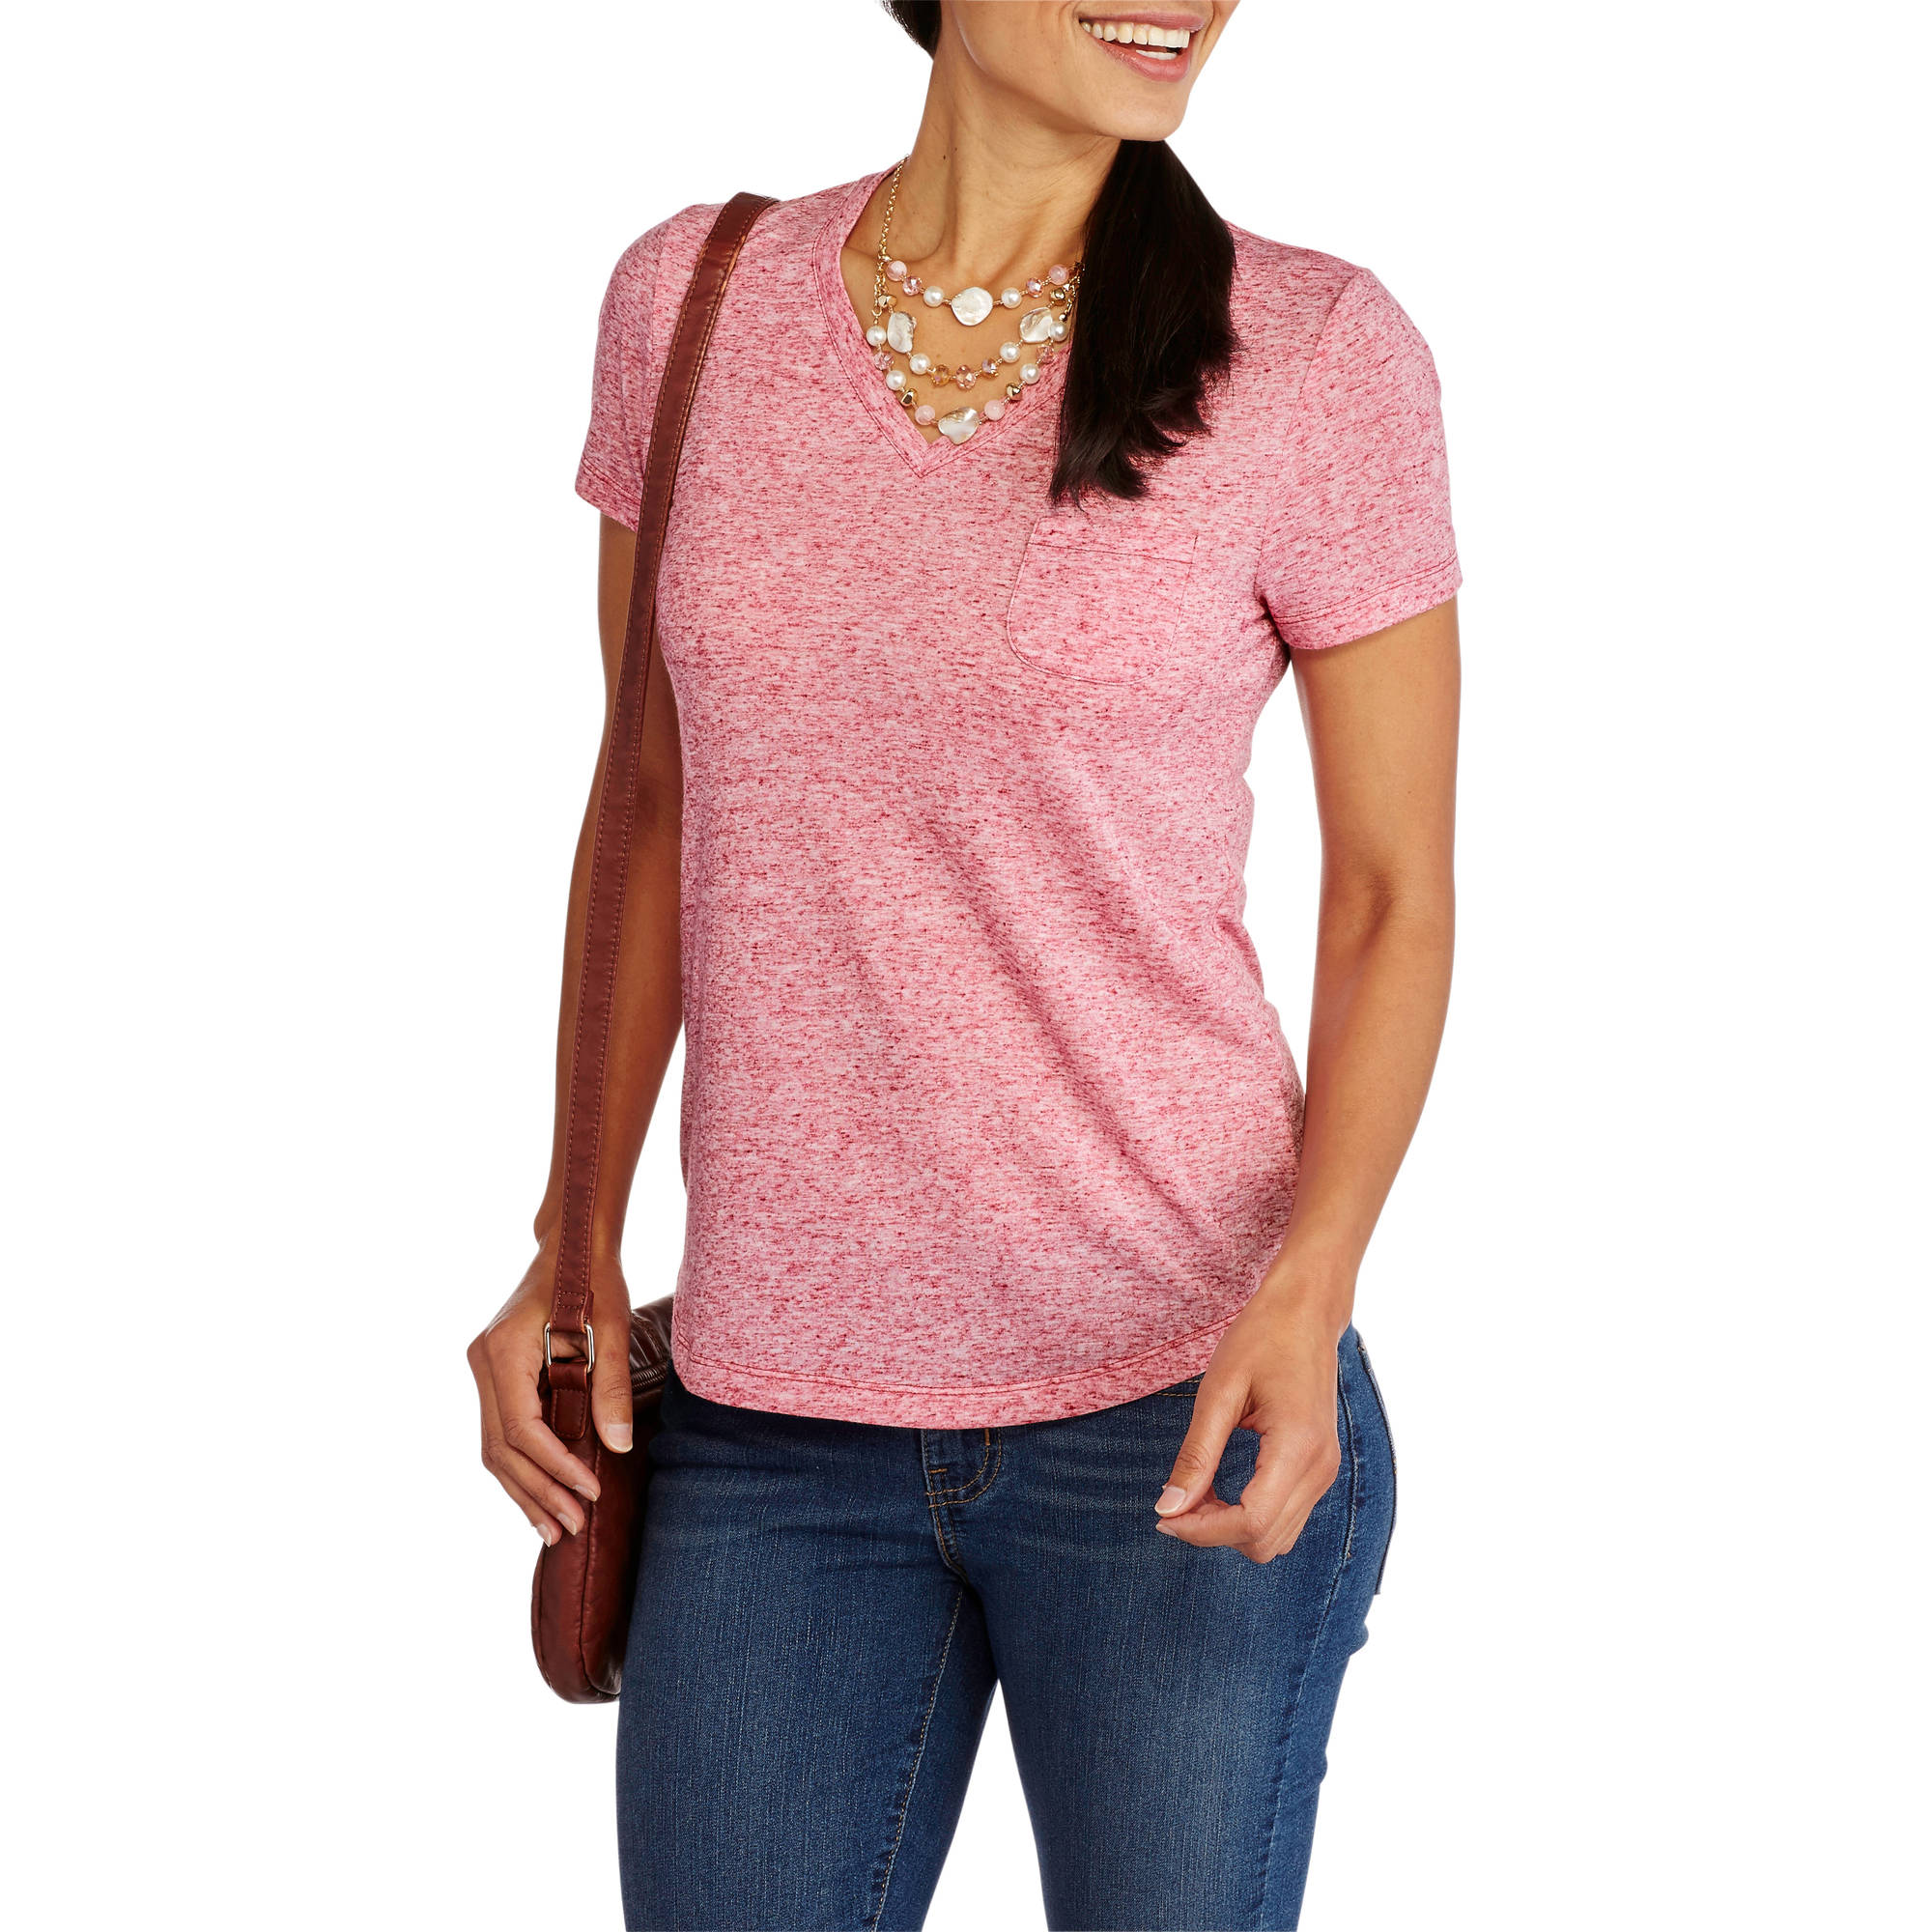 Faded Glory Women's Linen Blend Relaxed fit Short Sleeve V-Neck Pocket T-Shirt